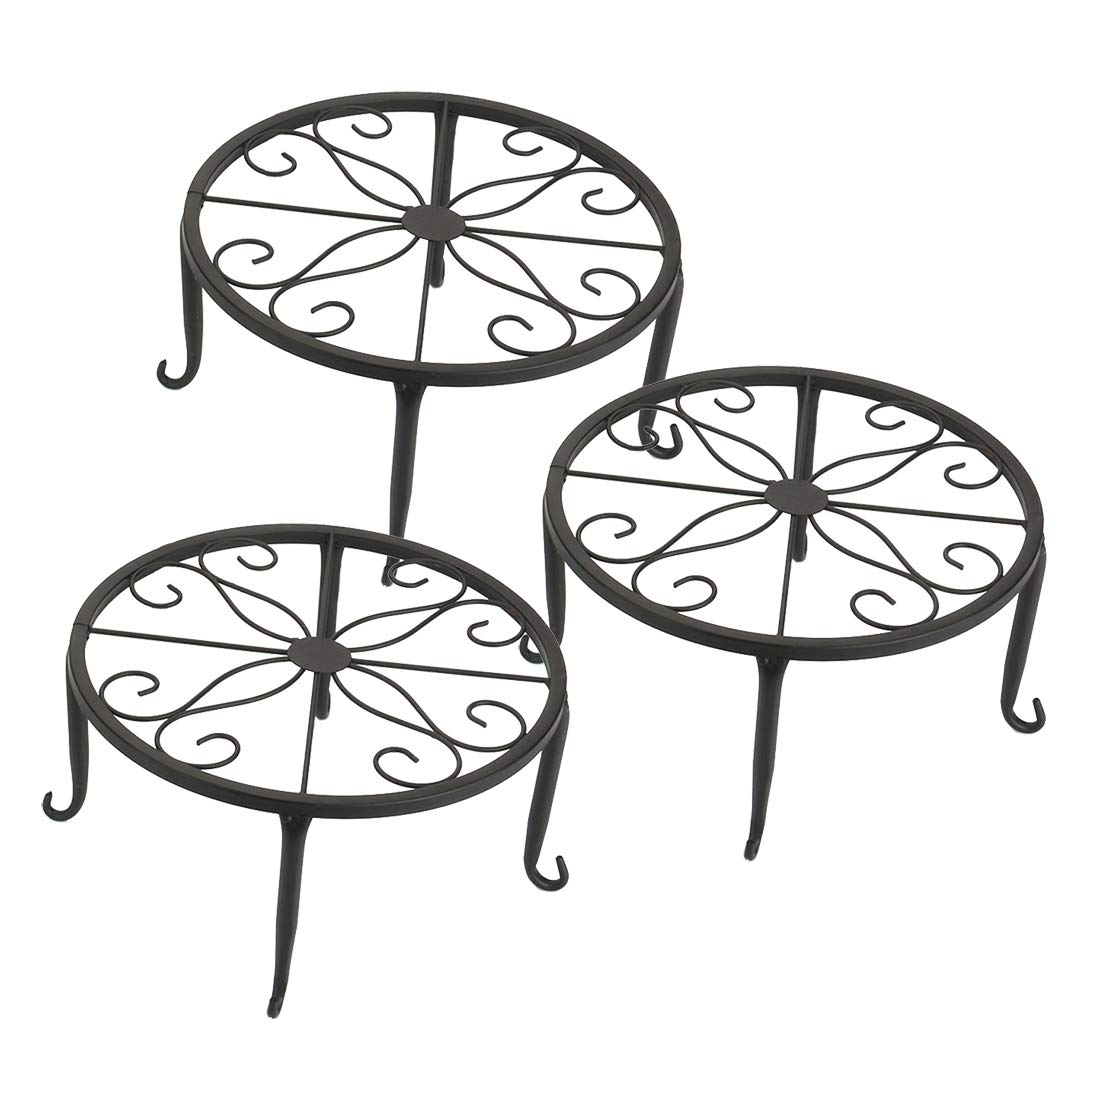 Tosnail 3 Pack Metal Potted Plant Stands Plant Holder (Black) by Tosnail